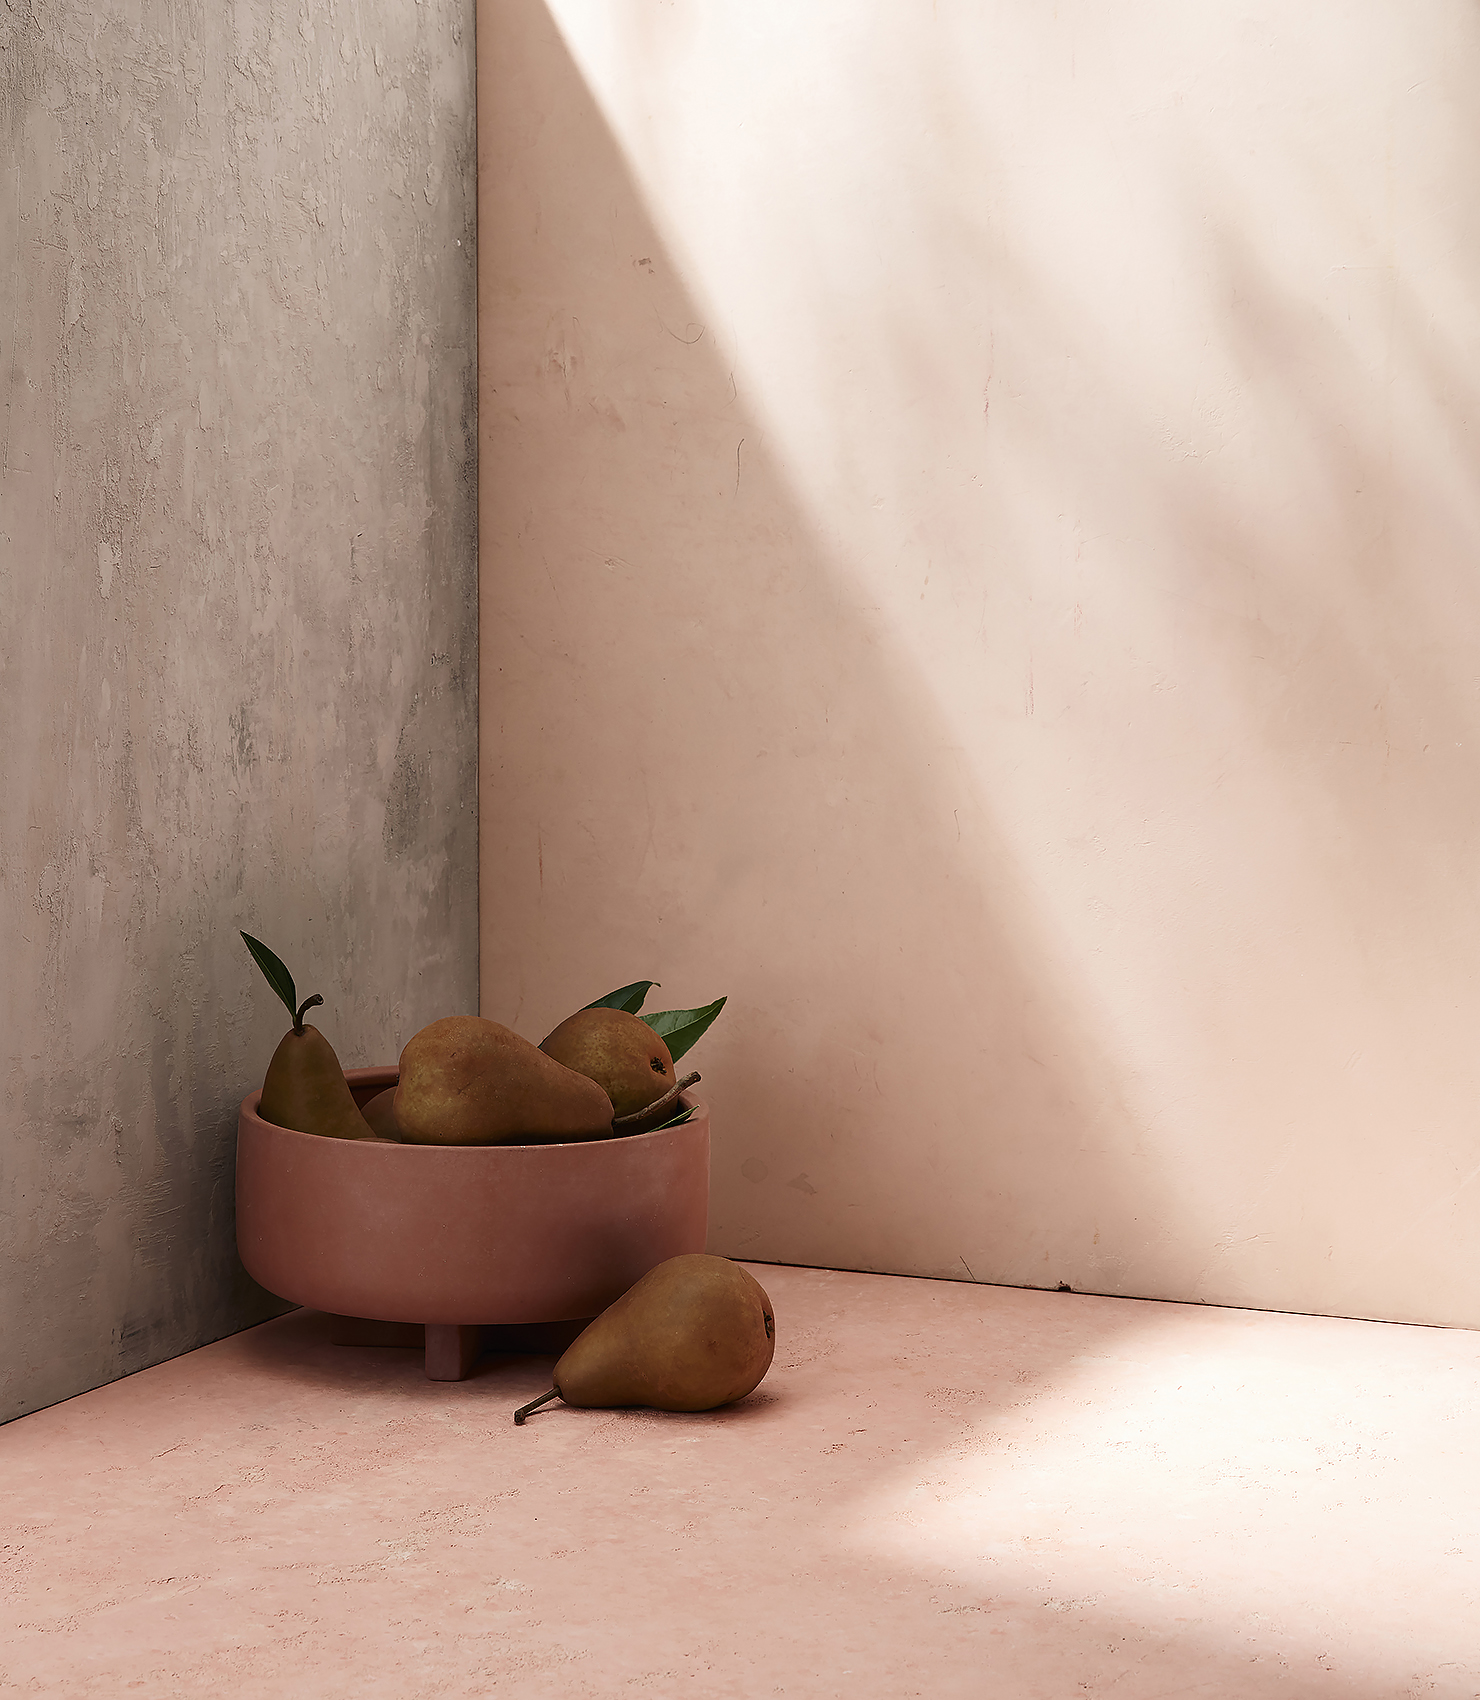 Pears in a bowl | natural light | shadow